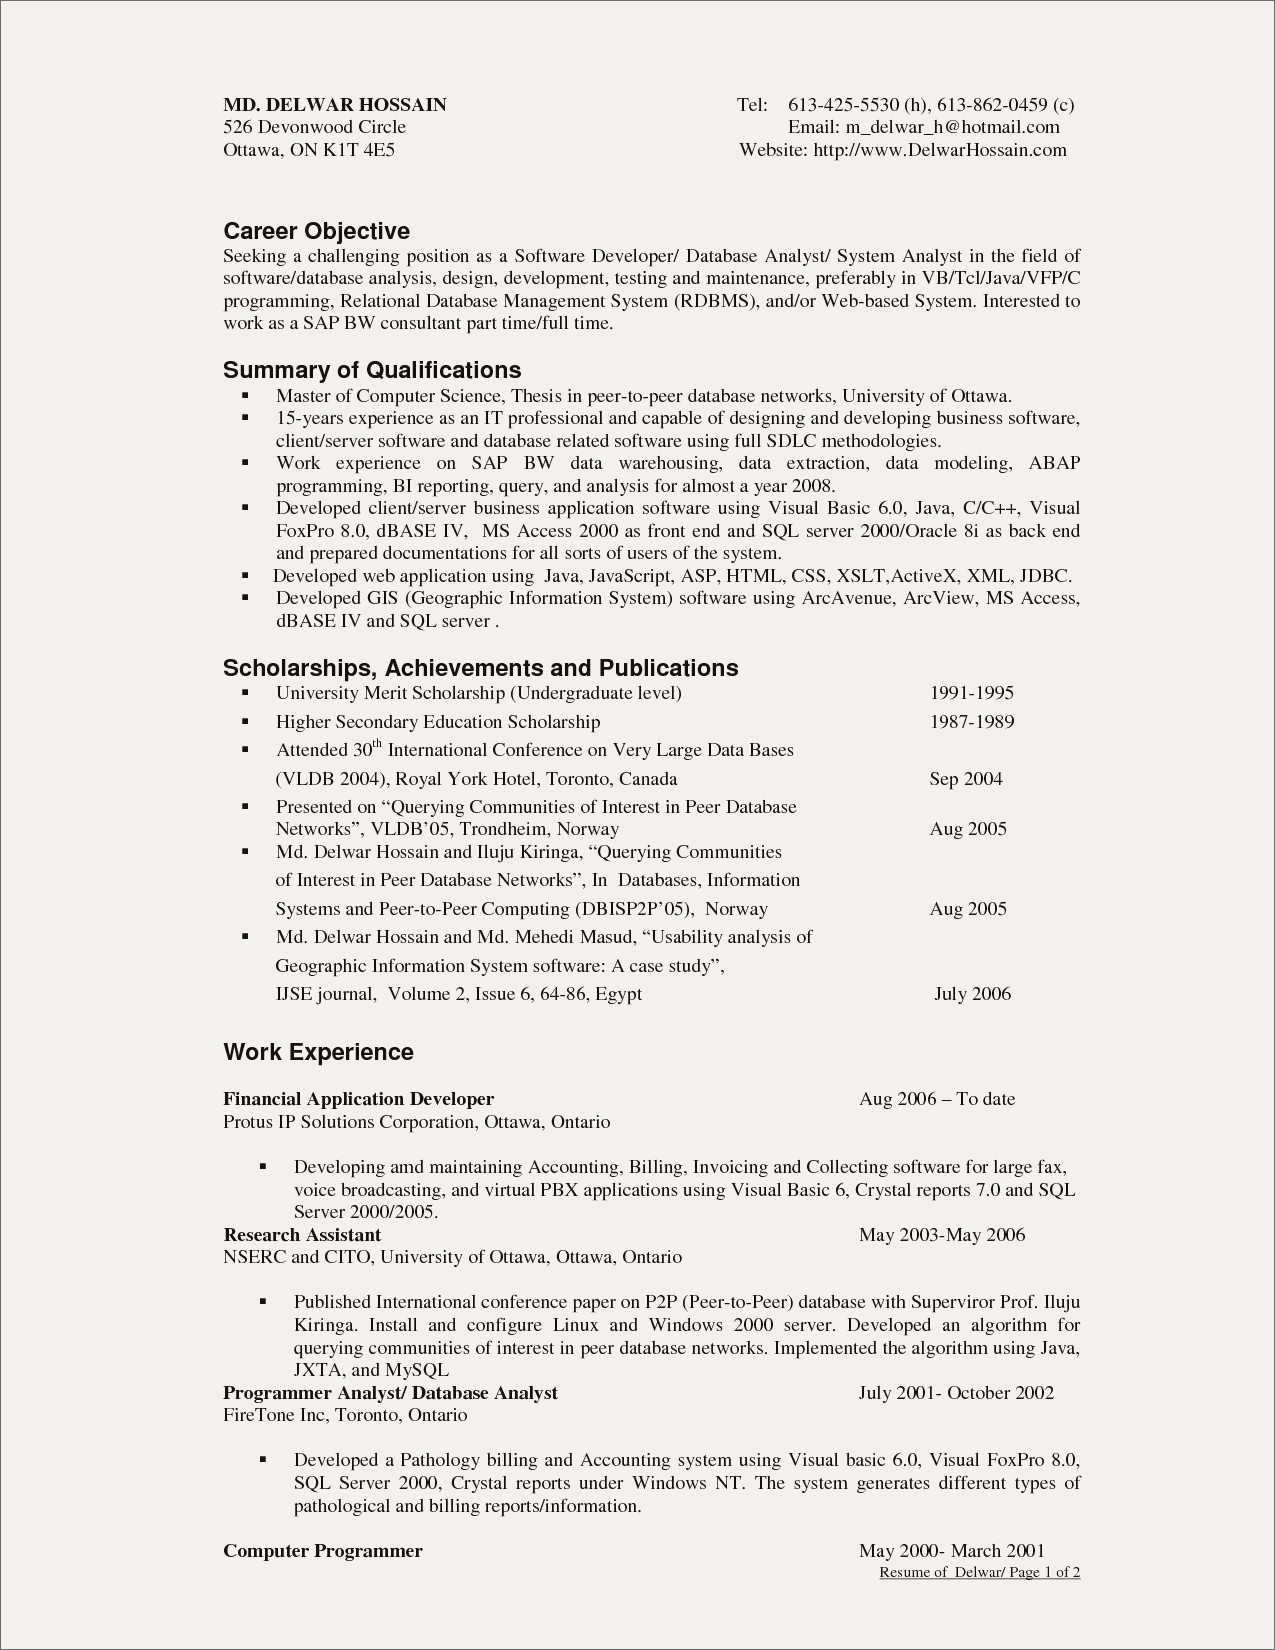 Writing A Resume Profile - Invoice Management System Profile Resume Examples Unique Cto Resume